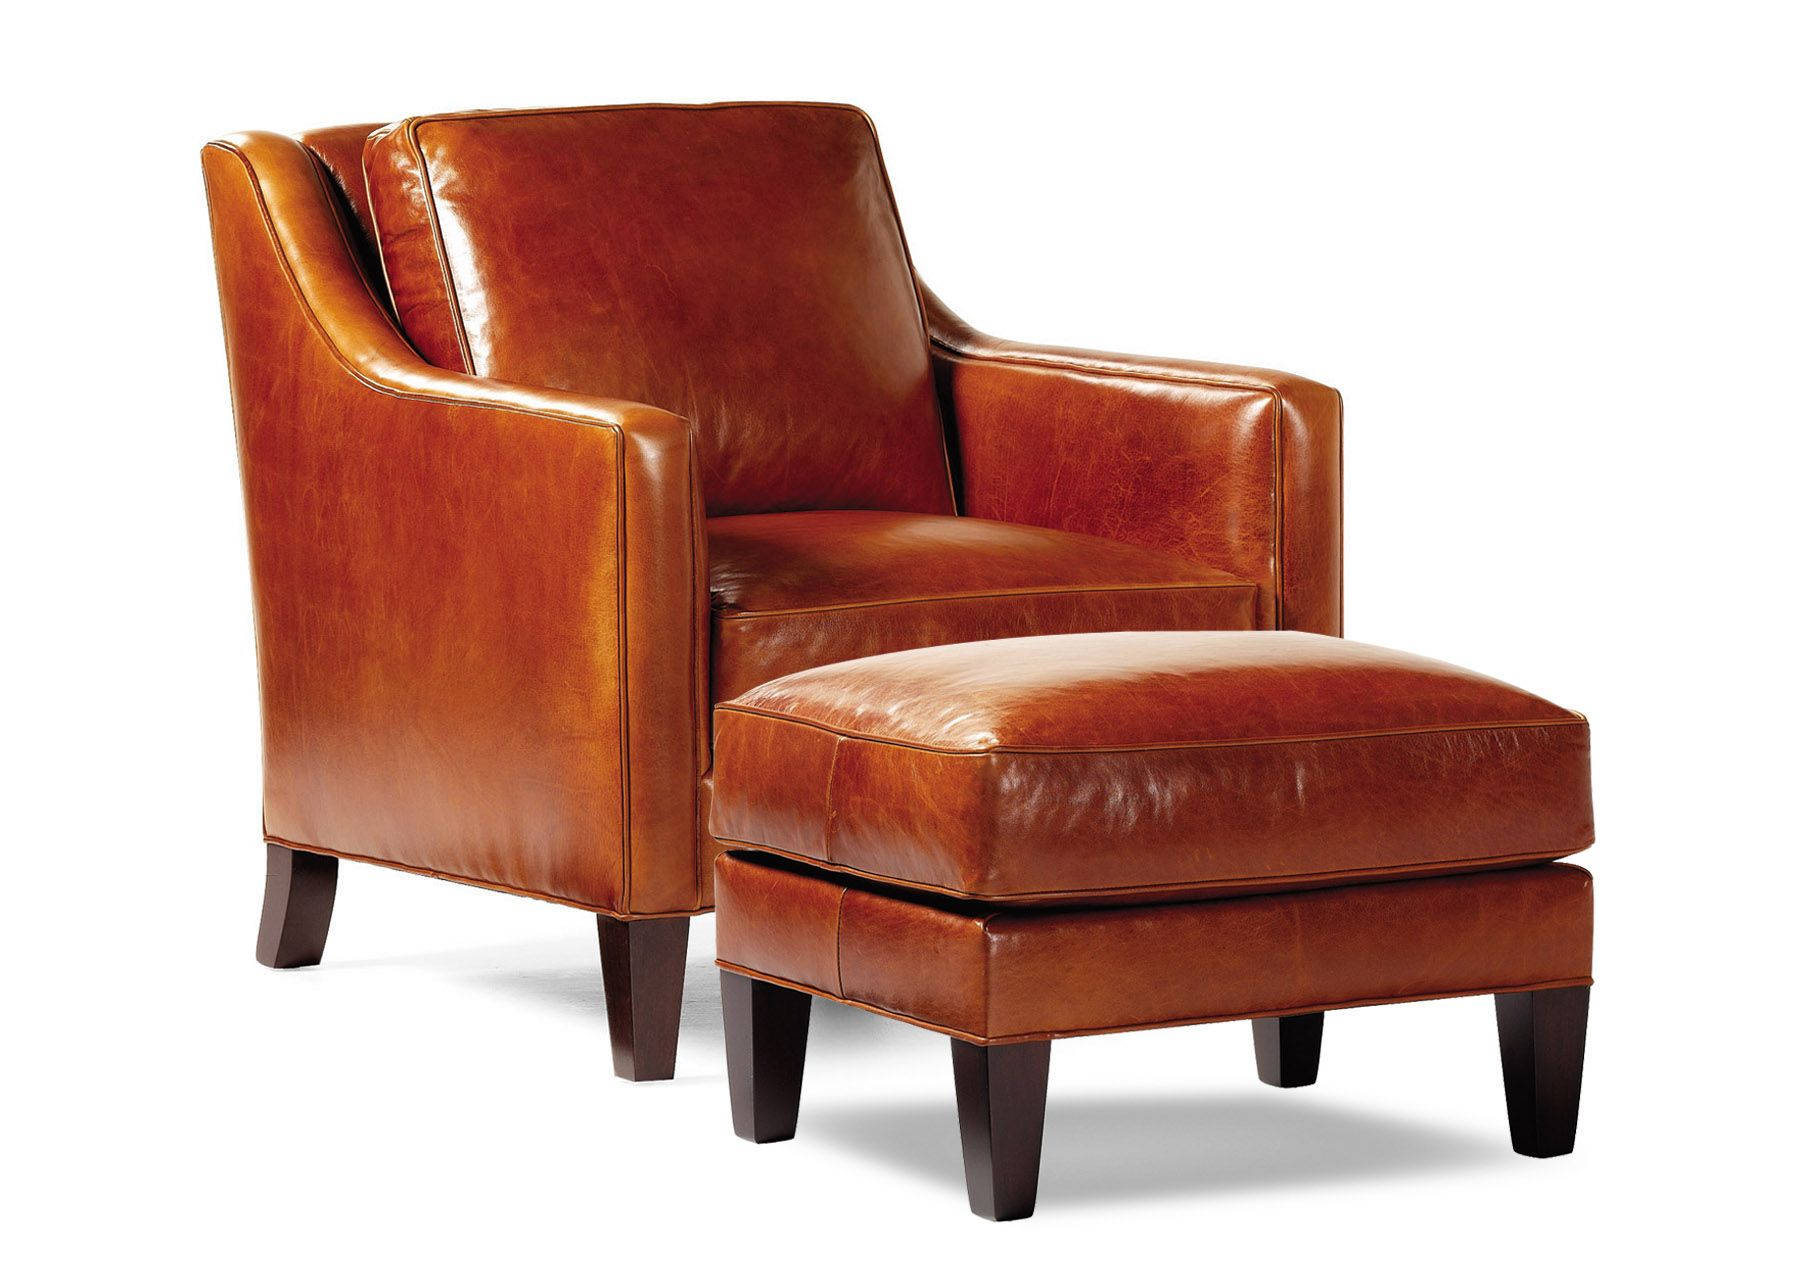 Donovan Chair & Ottoman by Hancock and Moore Accent